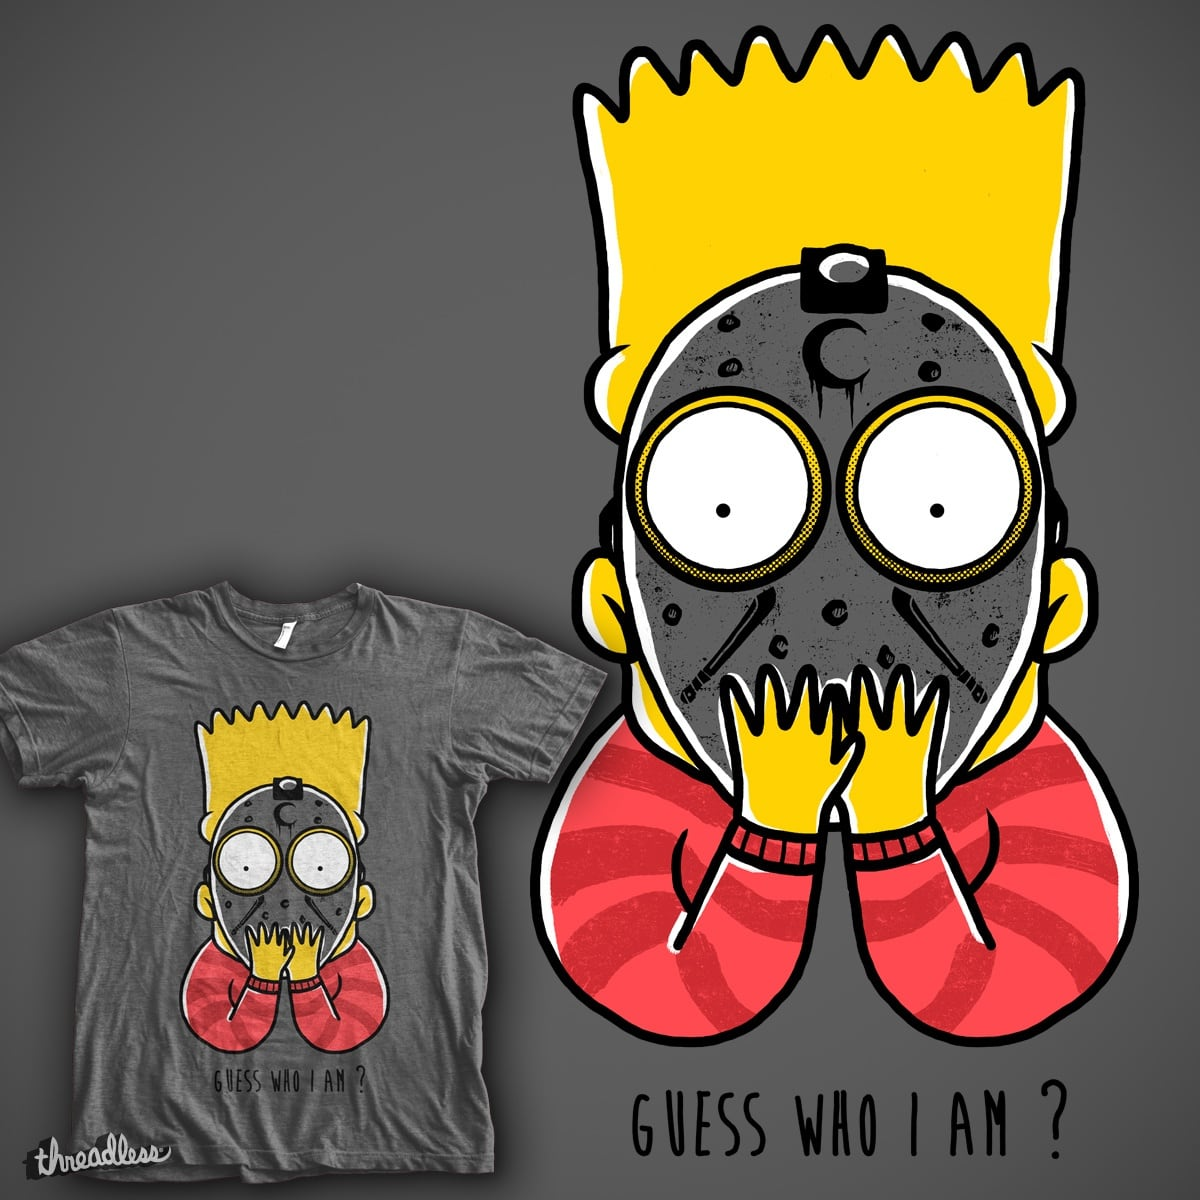 Perfect Undercover by groch on Threadless